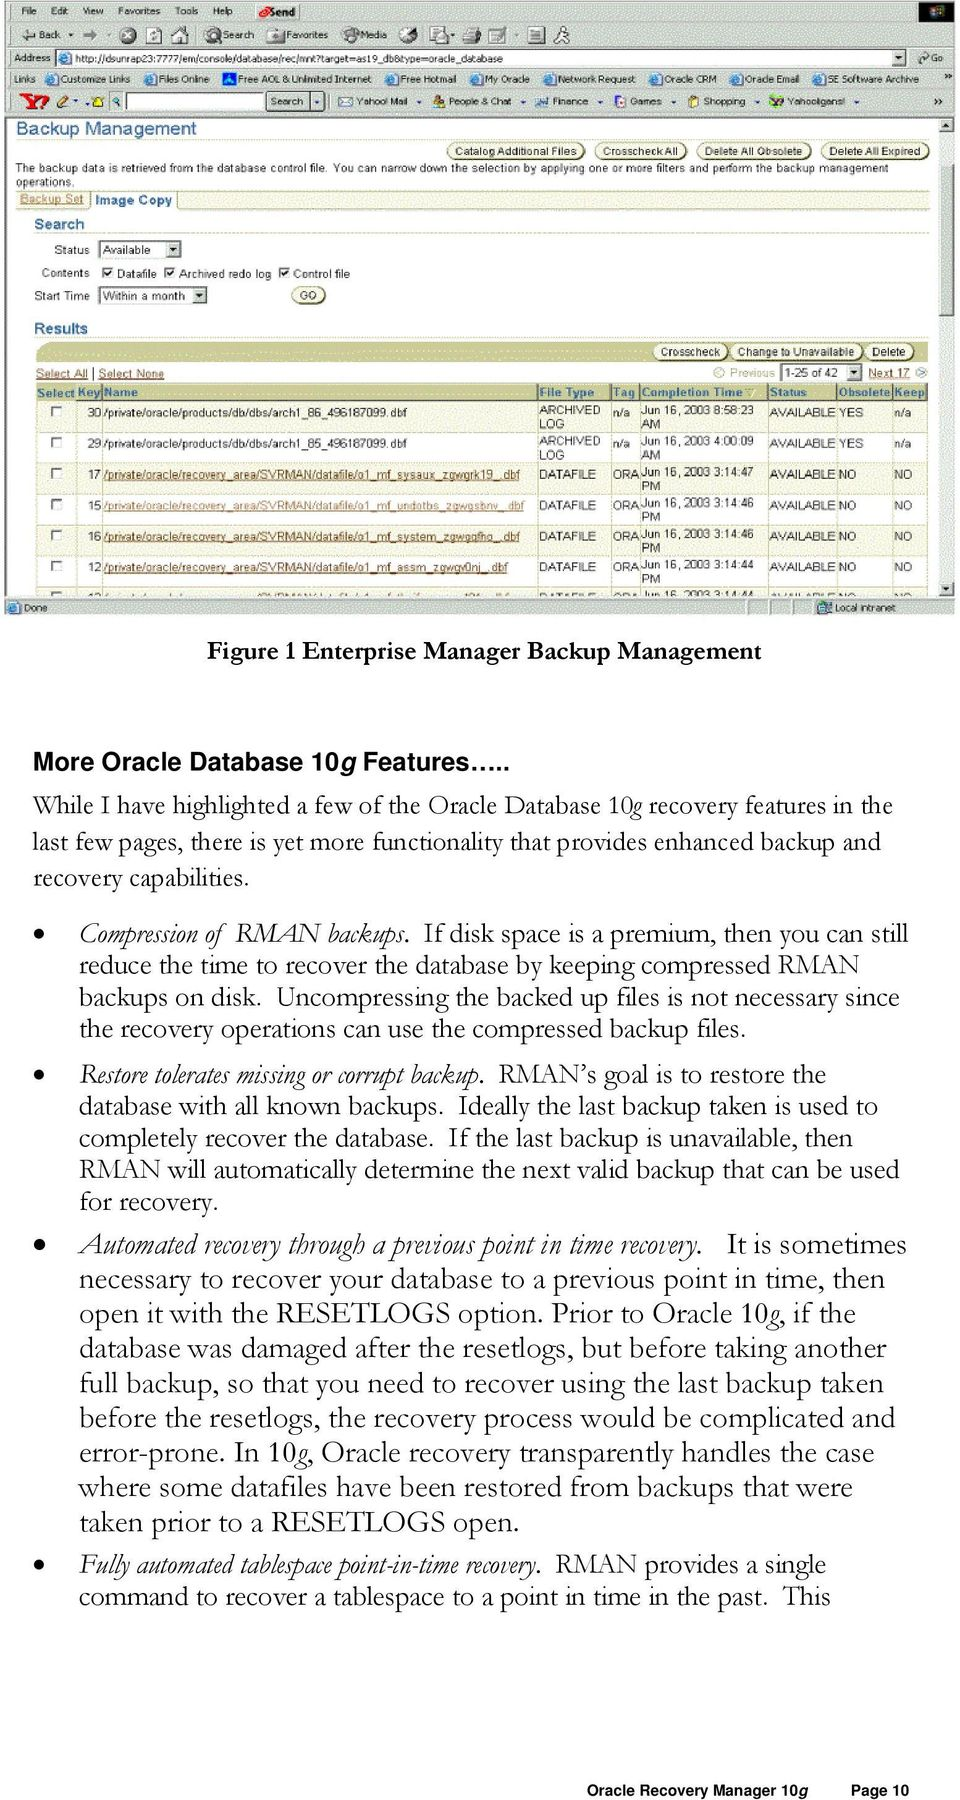 Compression of RMAN backups. If disk space is a premium, then you can still reduce the time to recover the database by keeping compressed RMAN backups on disk.